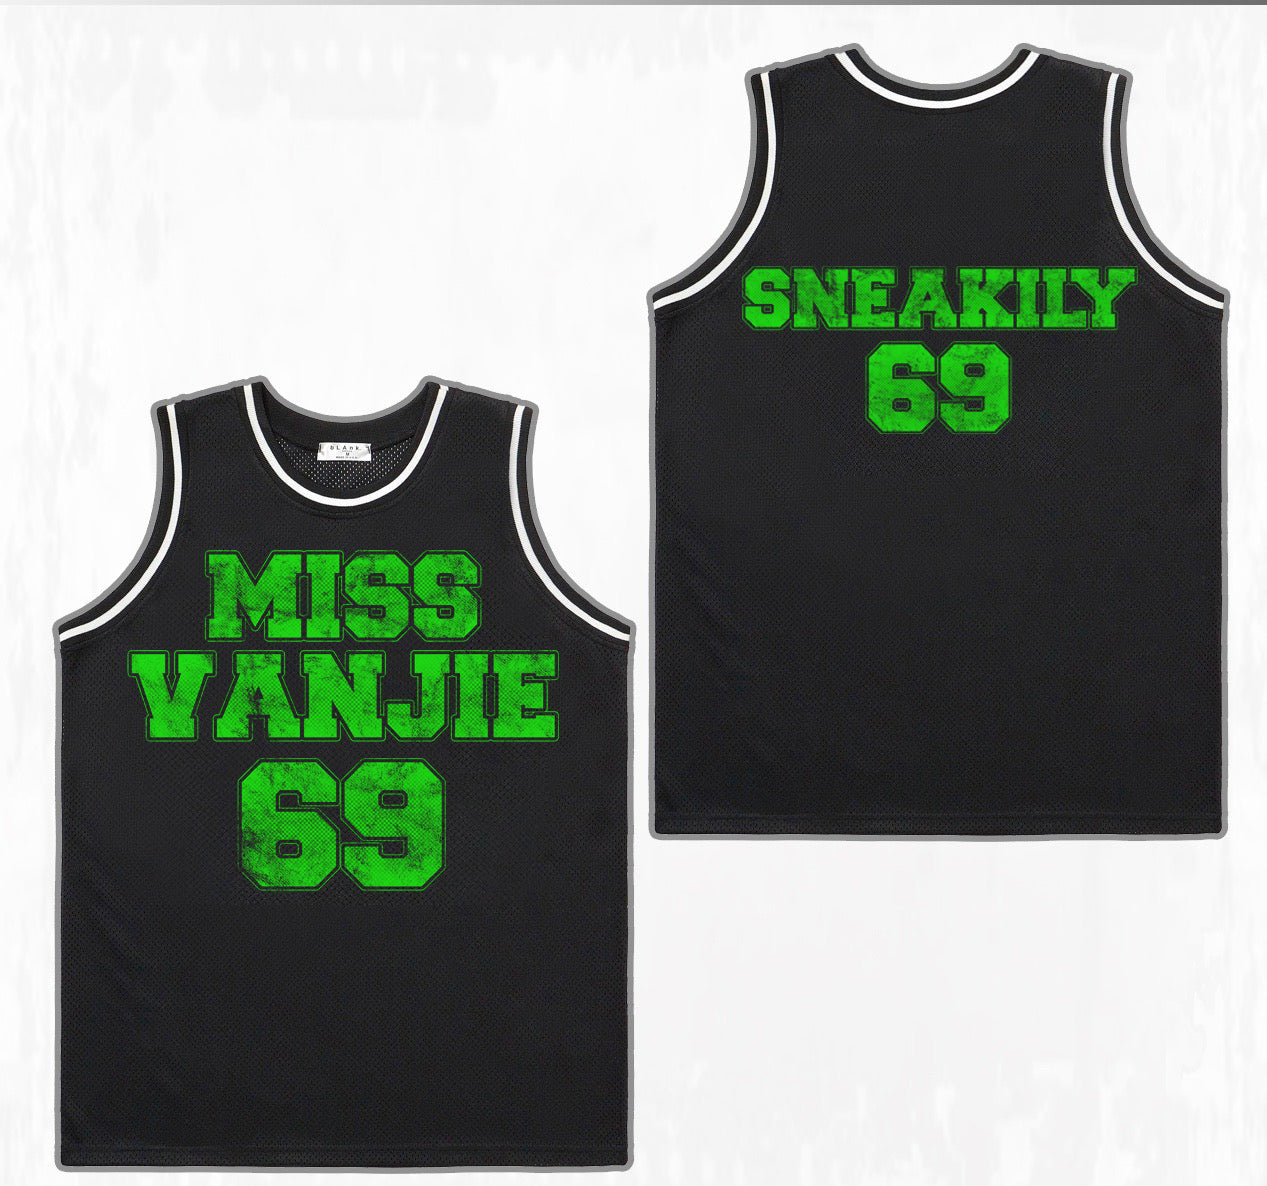 *New* Miss Vanjie's Sneakily 69 Jersey